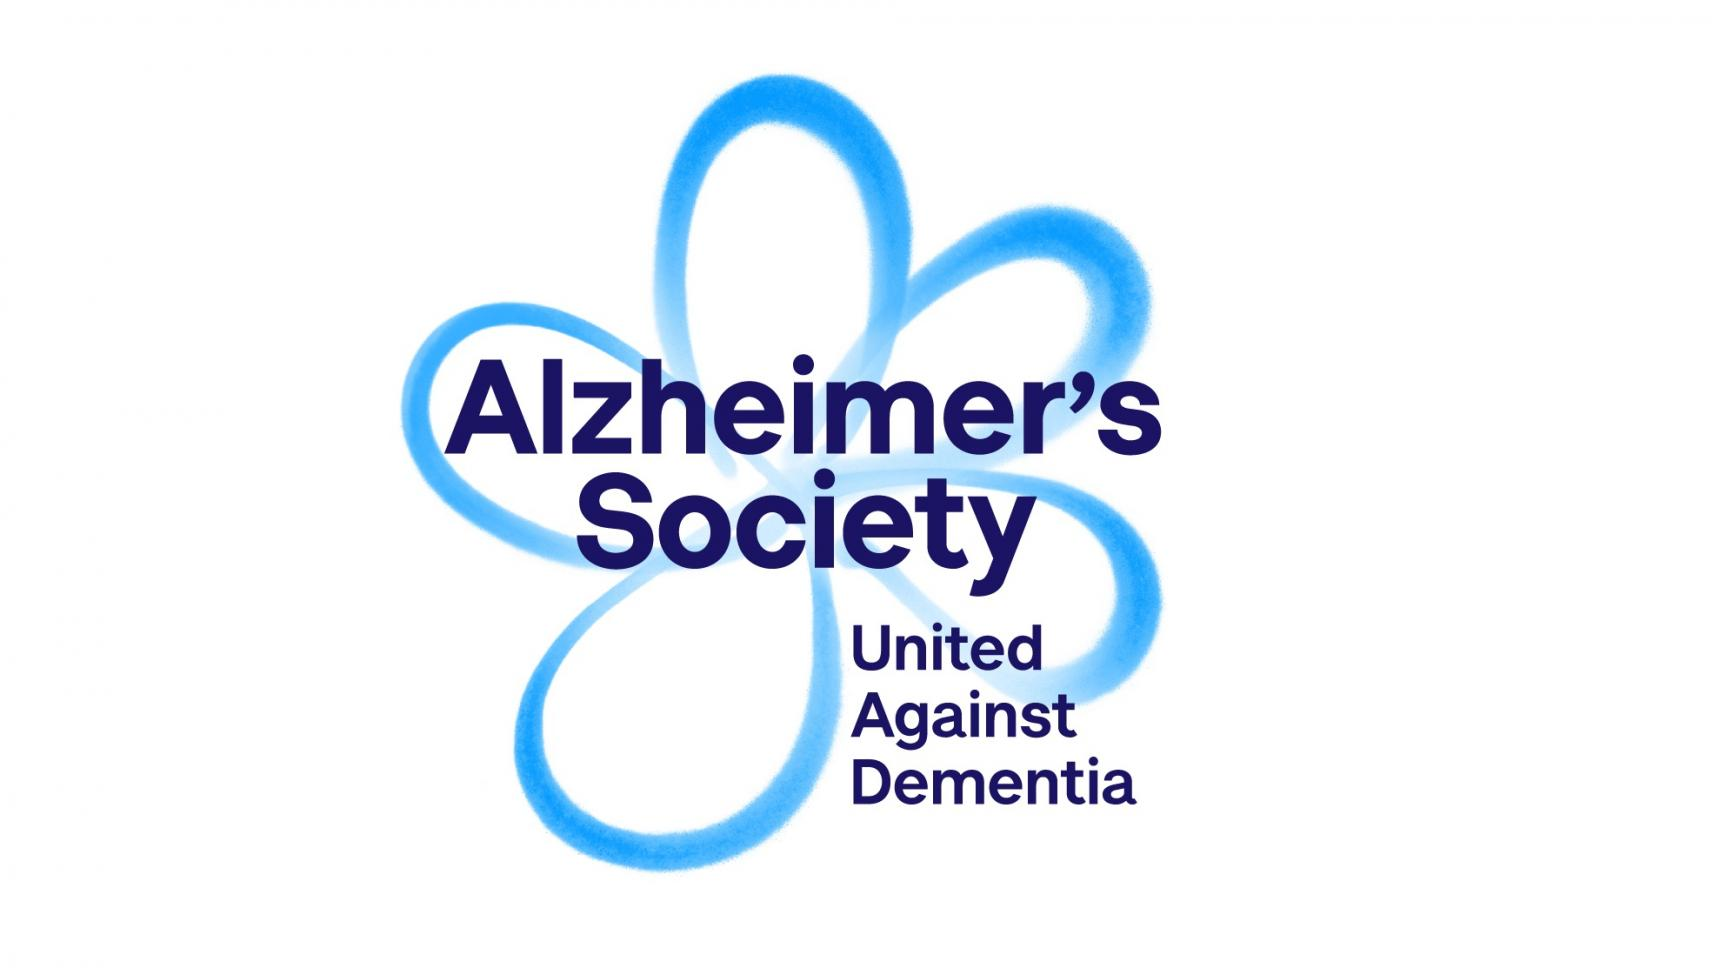 G2 Legal unites against dementia by raising £3,652